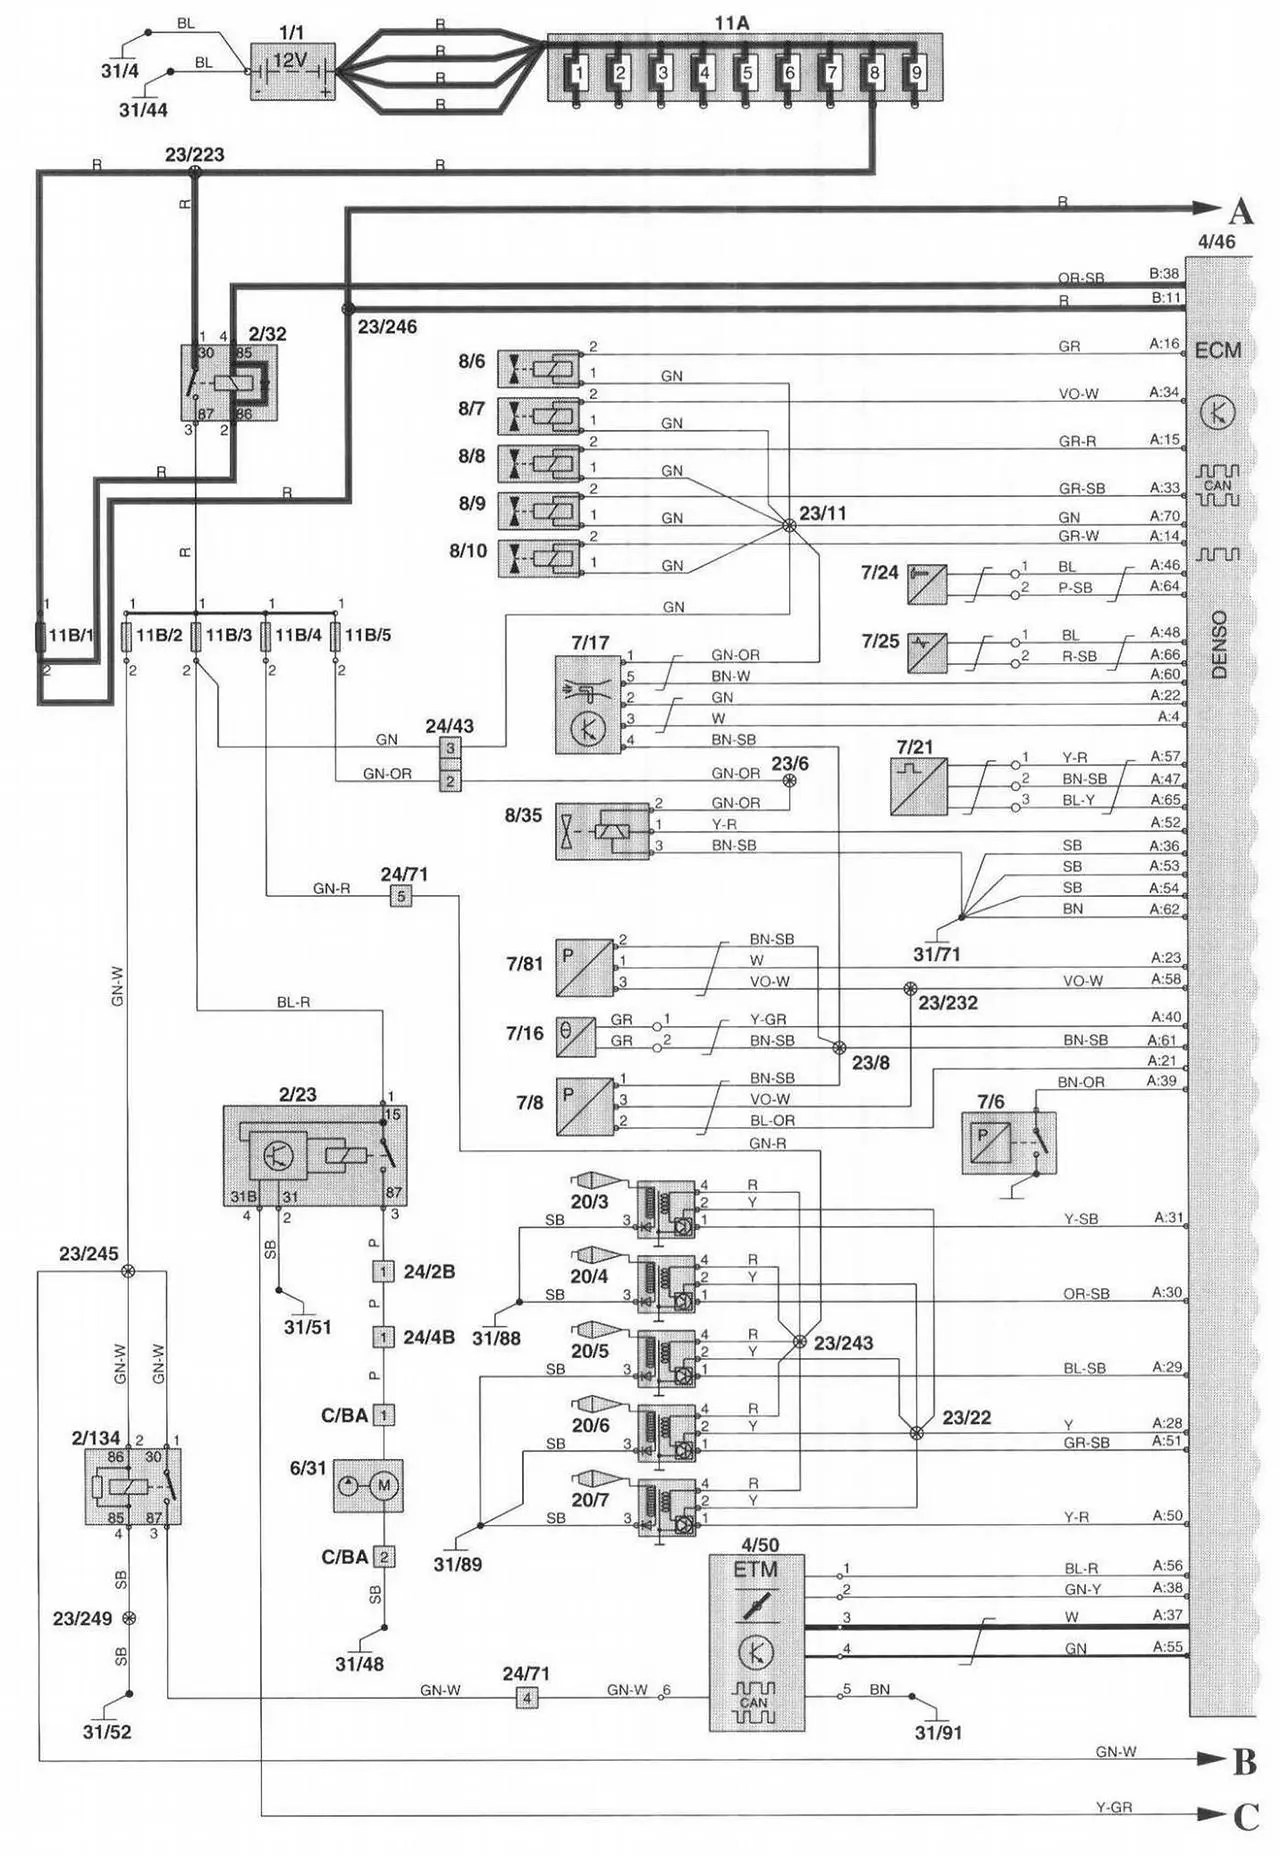 hight resolution of s60 relay switch wiring diagram wiring diagrams60 relay switch wiring diagram go wiring diagrams60 relay switch